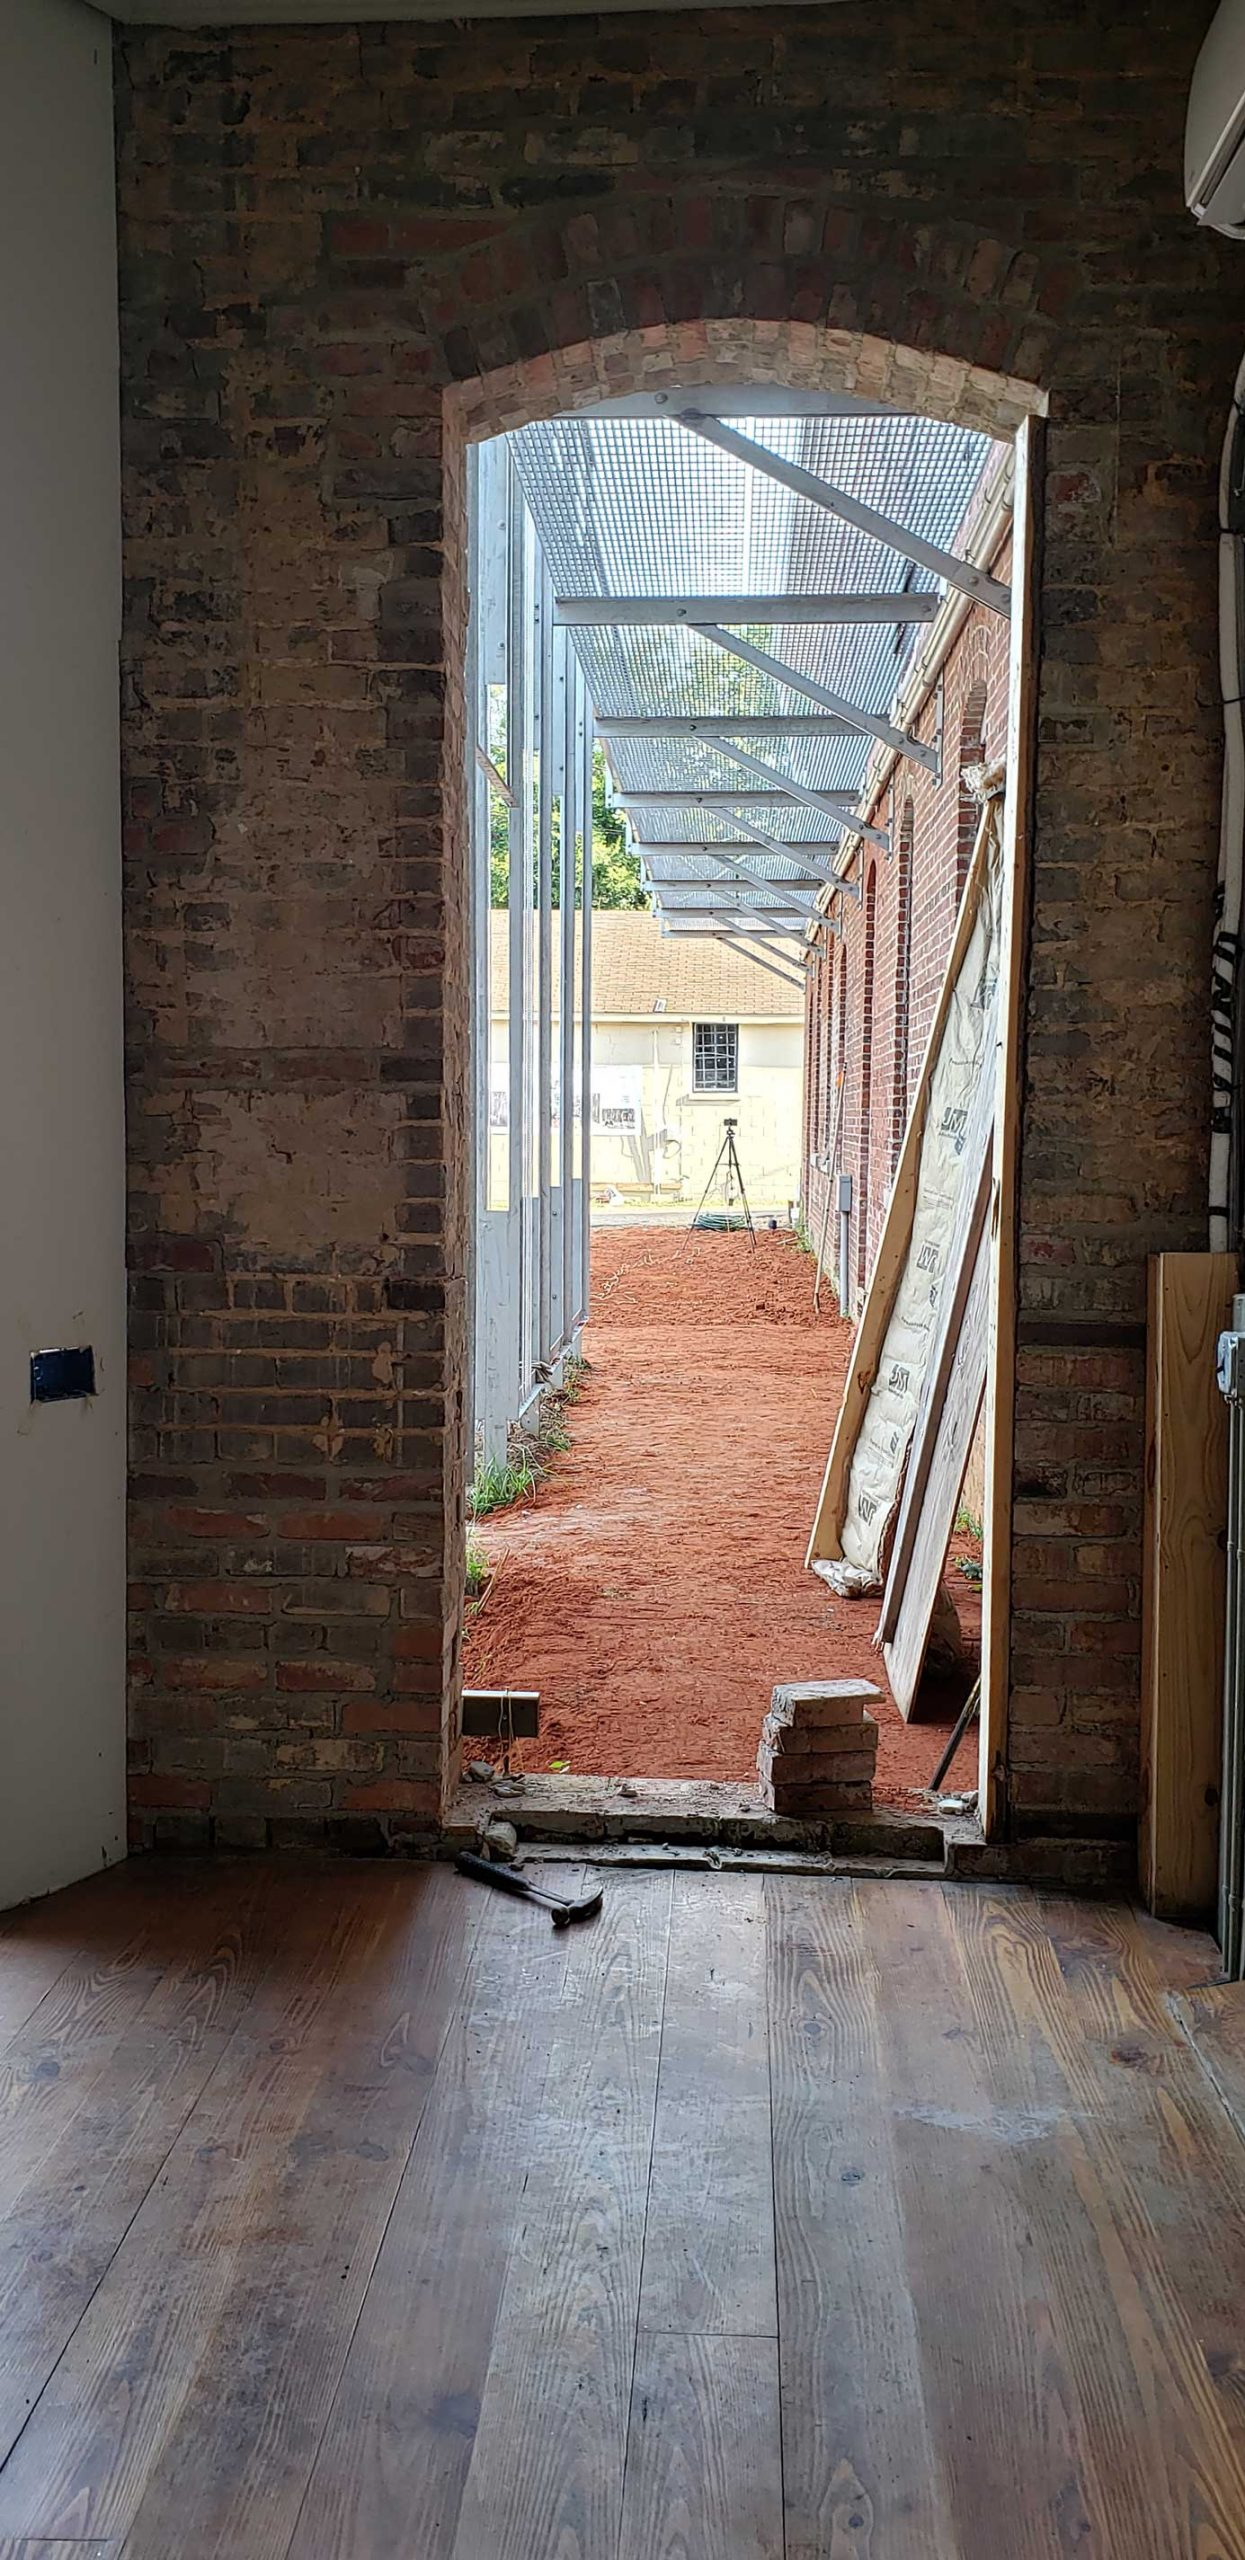 View from main hallway into courtyard